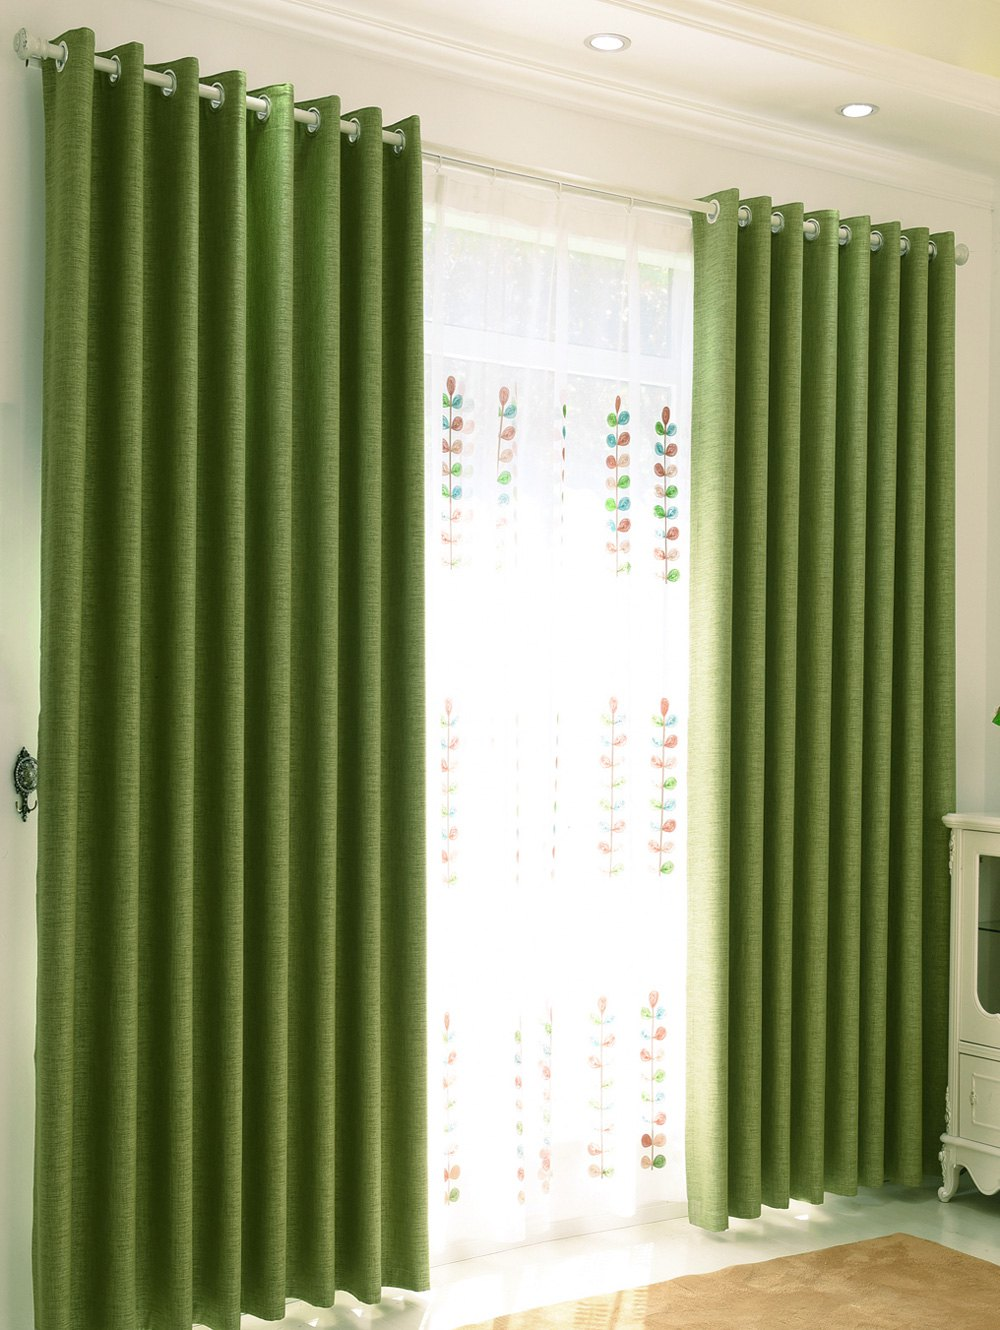 Home Decor Shading Blackout Perforated Window Curtain - Vert 100*250CM